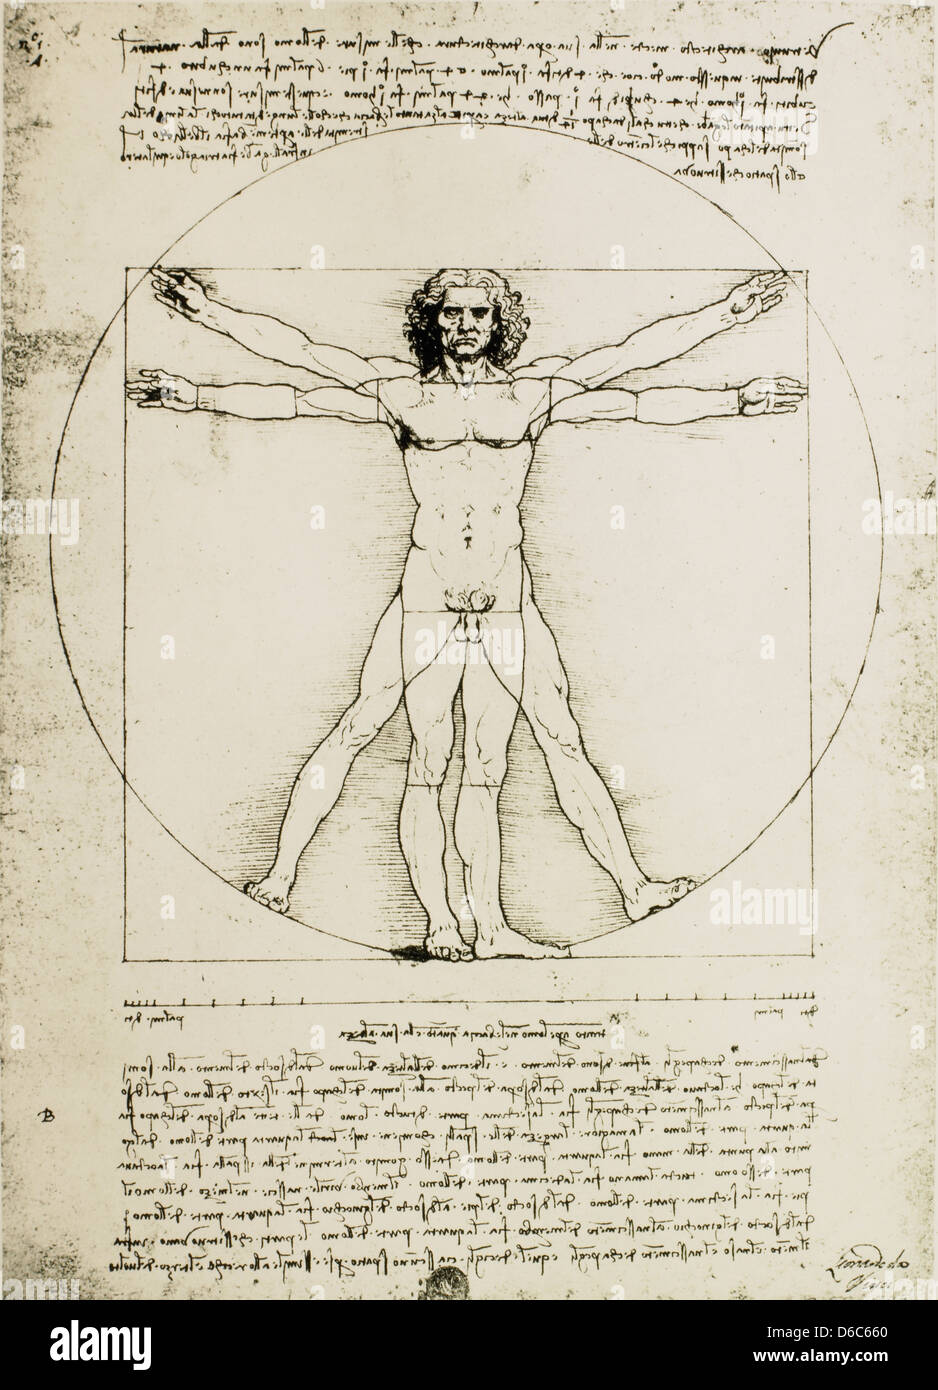 vitruvian man study of proportions leonardo da vinci drawing stock photo 55587336 alamy. Black Bedroom Furniture Sets. Home Design Ideas